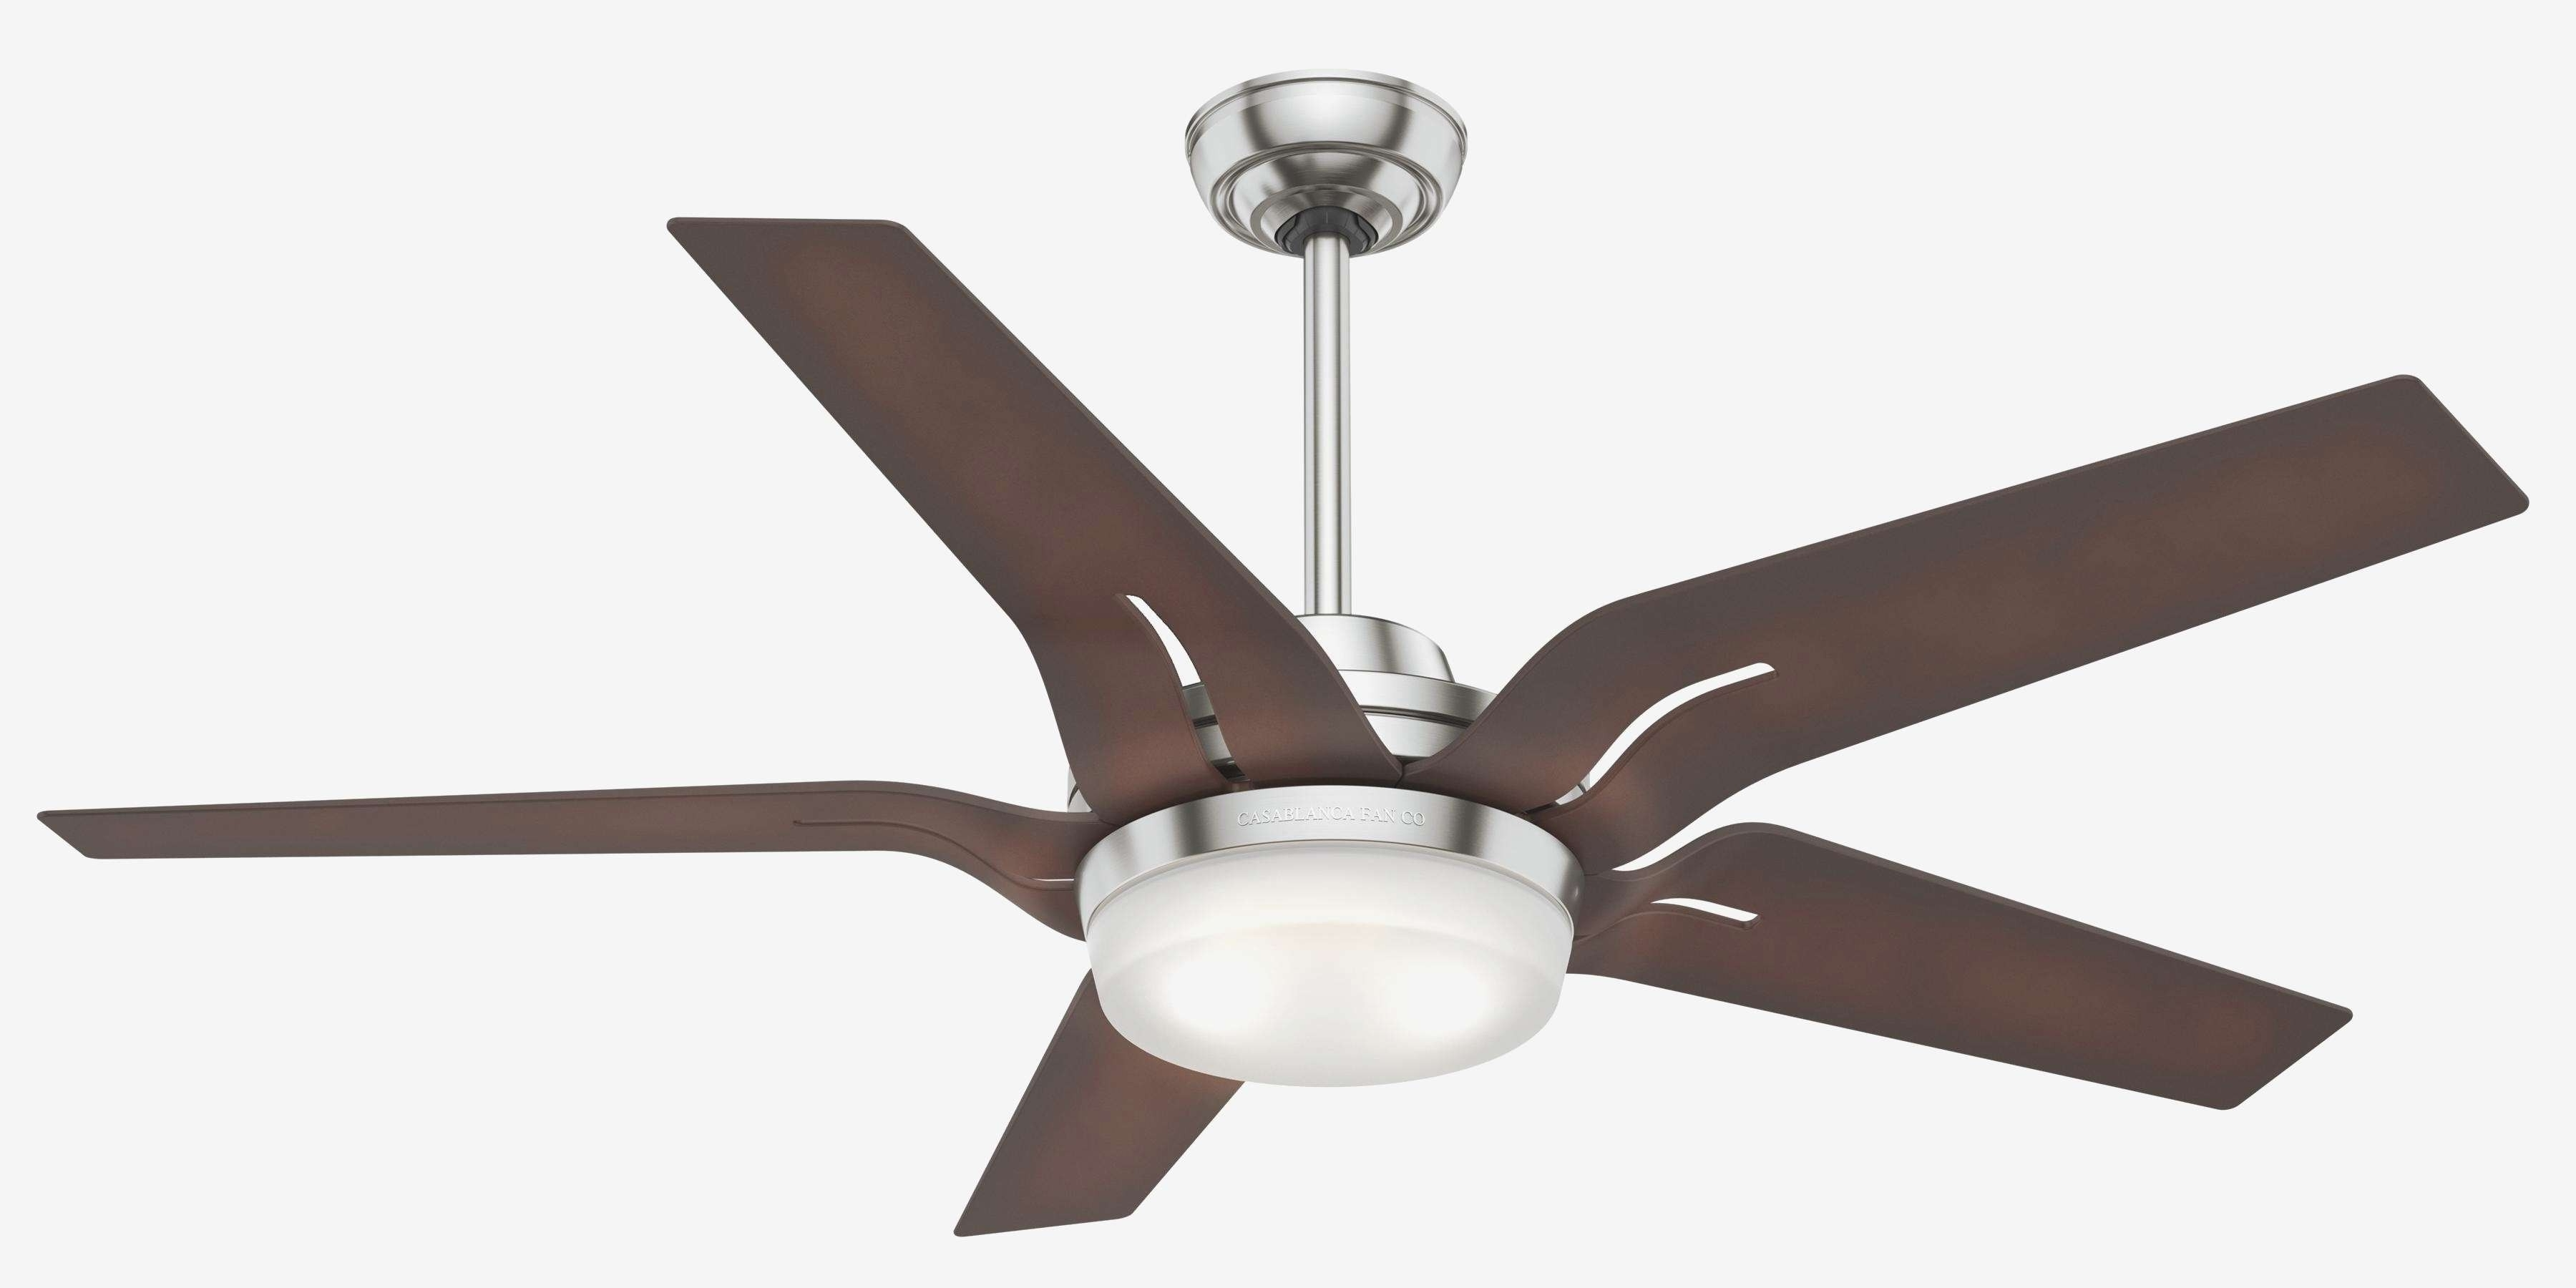 Trendy Calmly Outdoor Ceiling Fan No Light Lighting Design Ideas Ceiling For Outdoor Ceiling Fans For Windy Areas (Gallery 13 of 20)